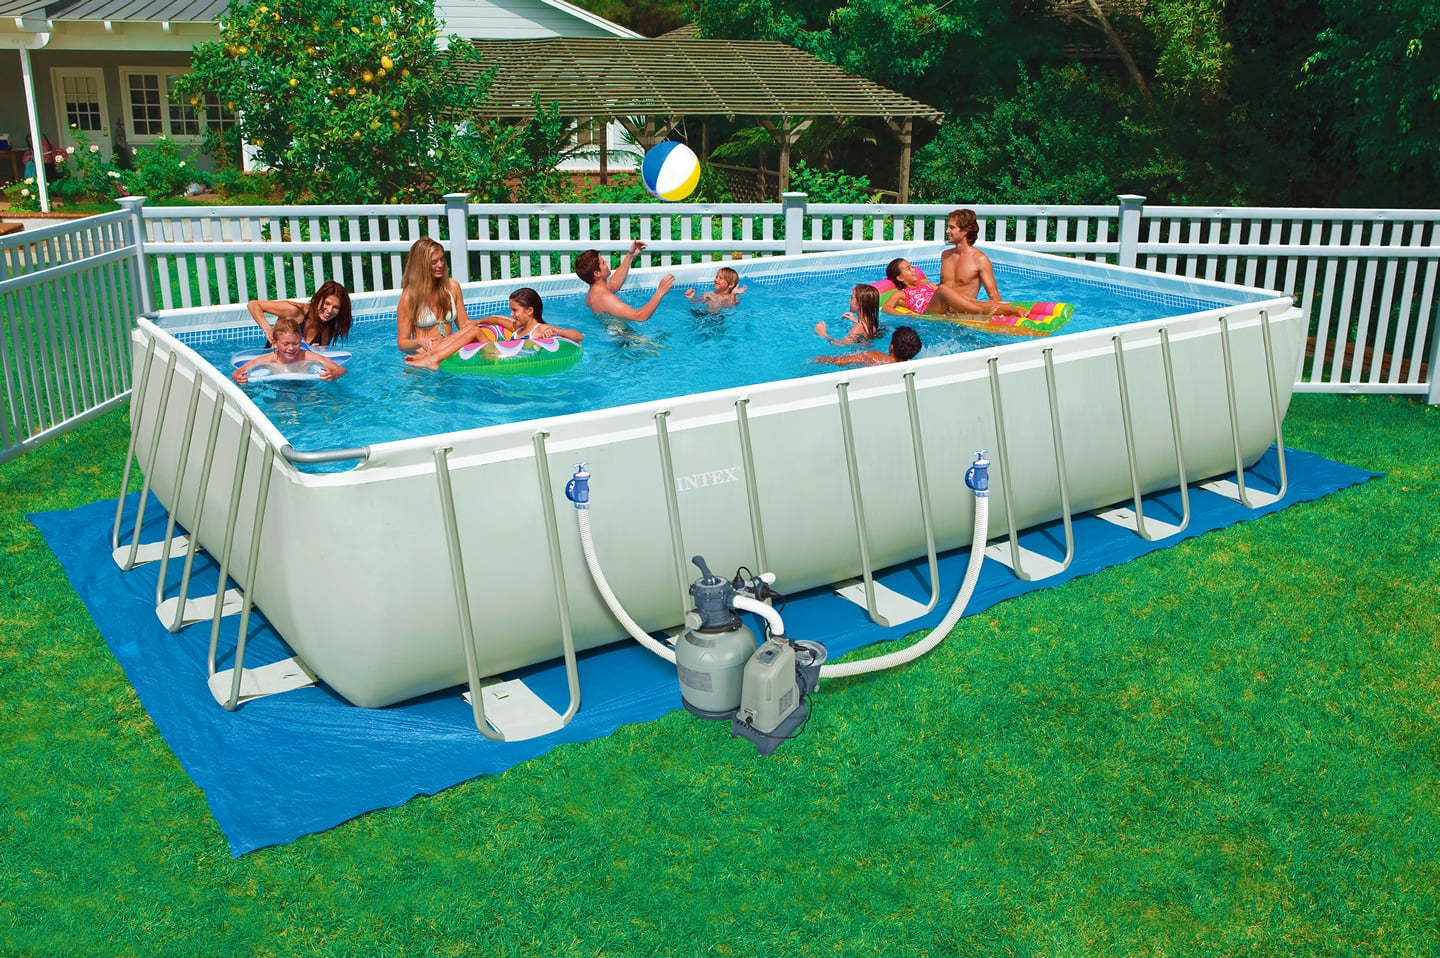 Piscineitalia piscine fuori terra intex 732 for Filtro piscina intex